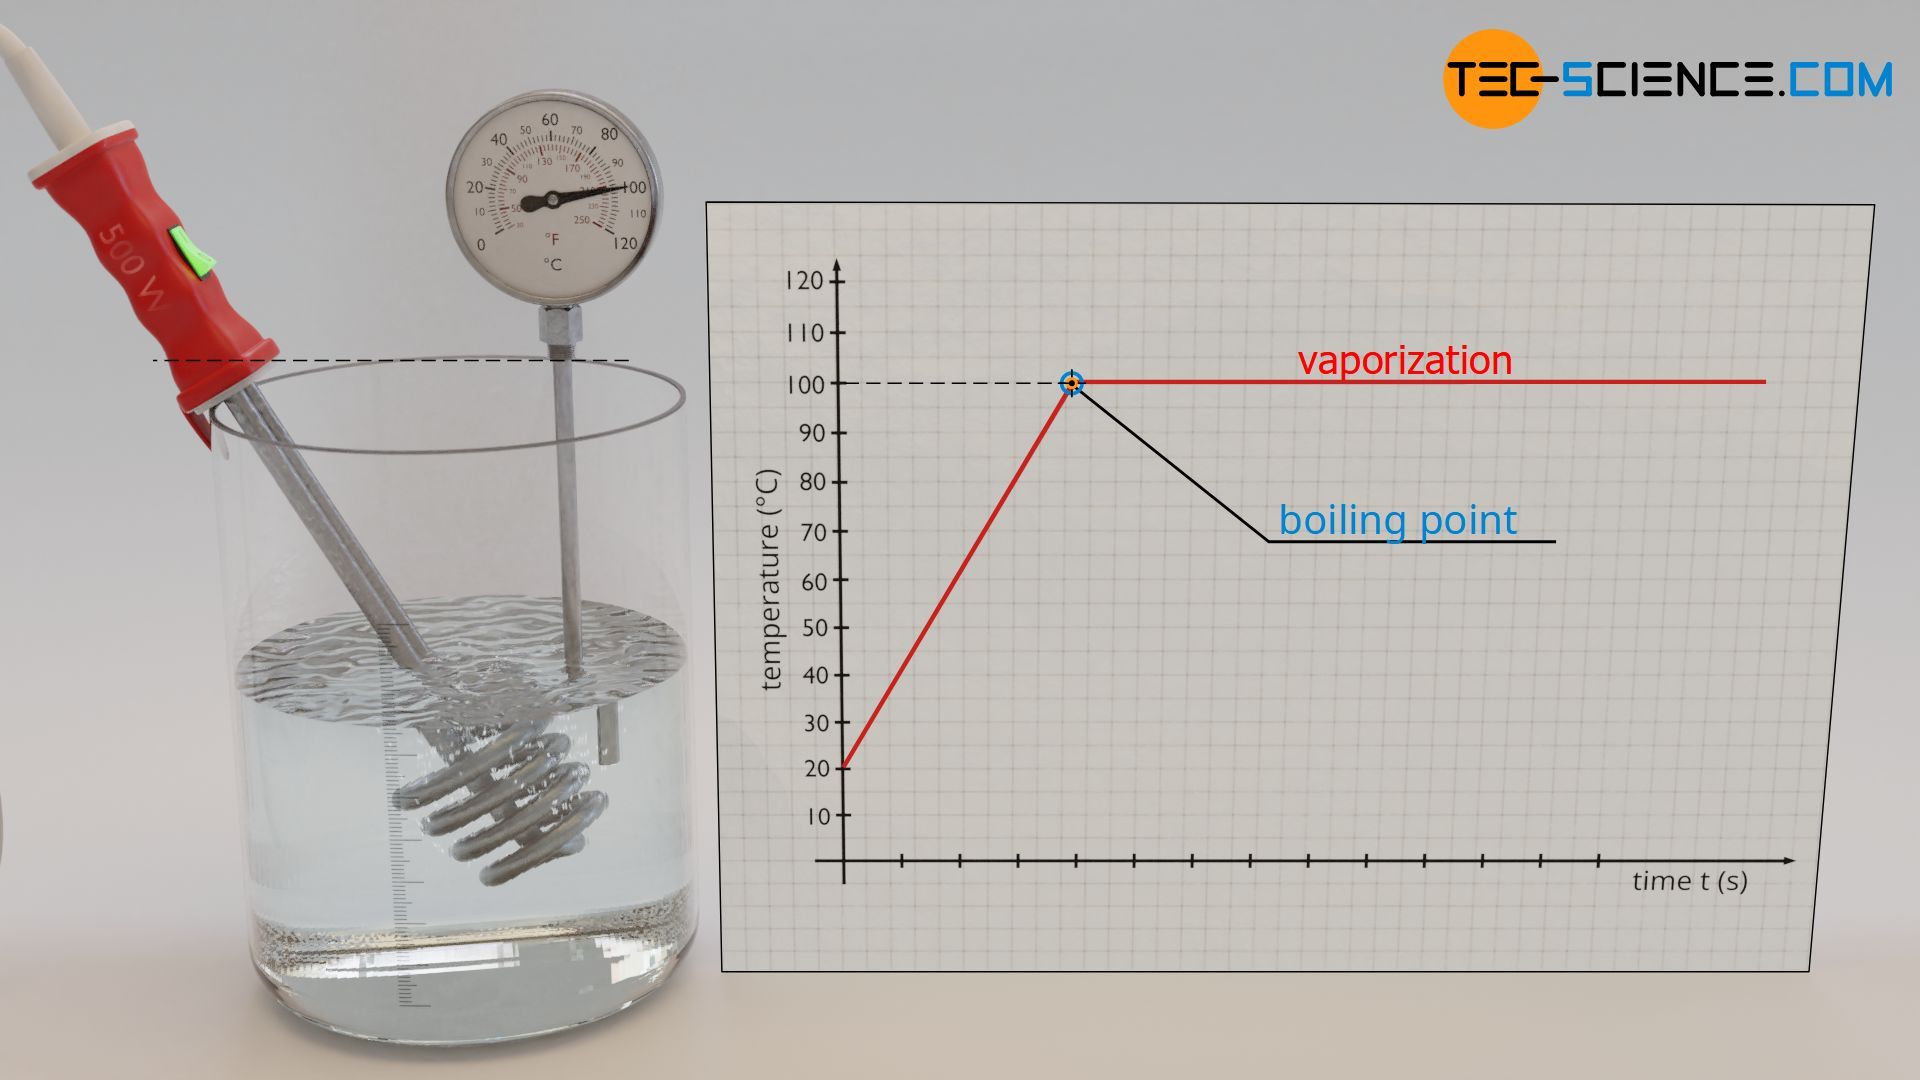 Temperature as a function of time during vaporization